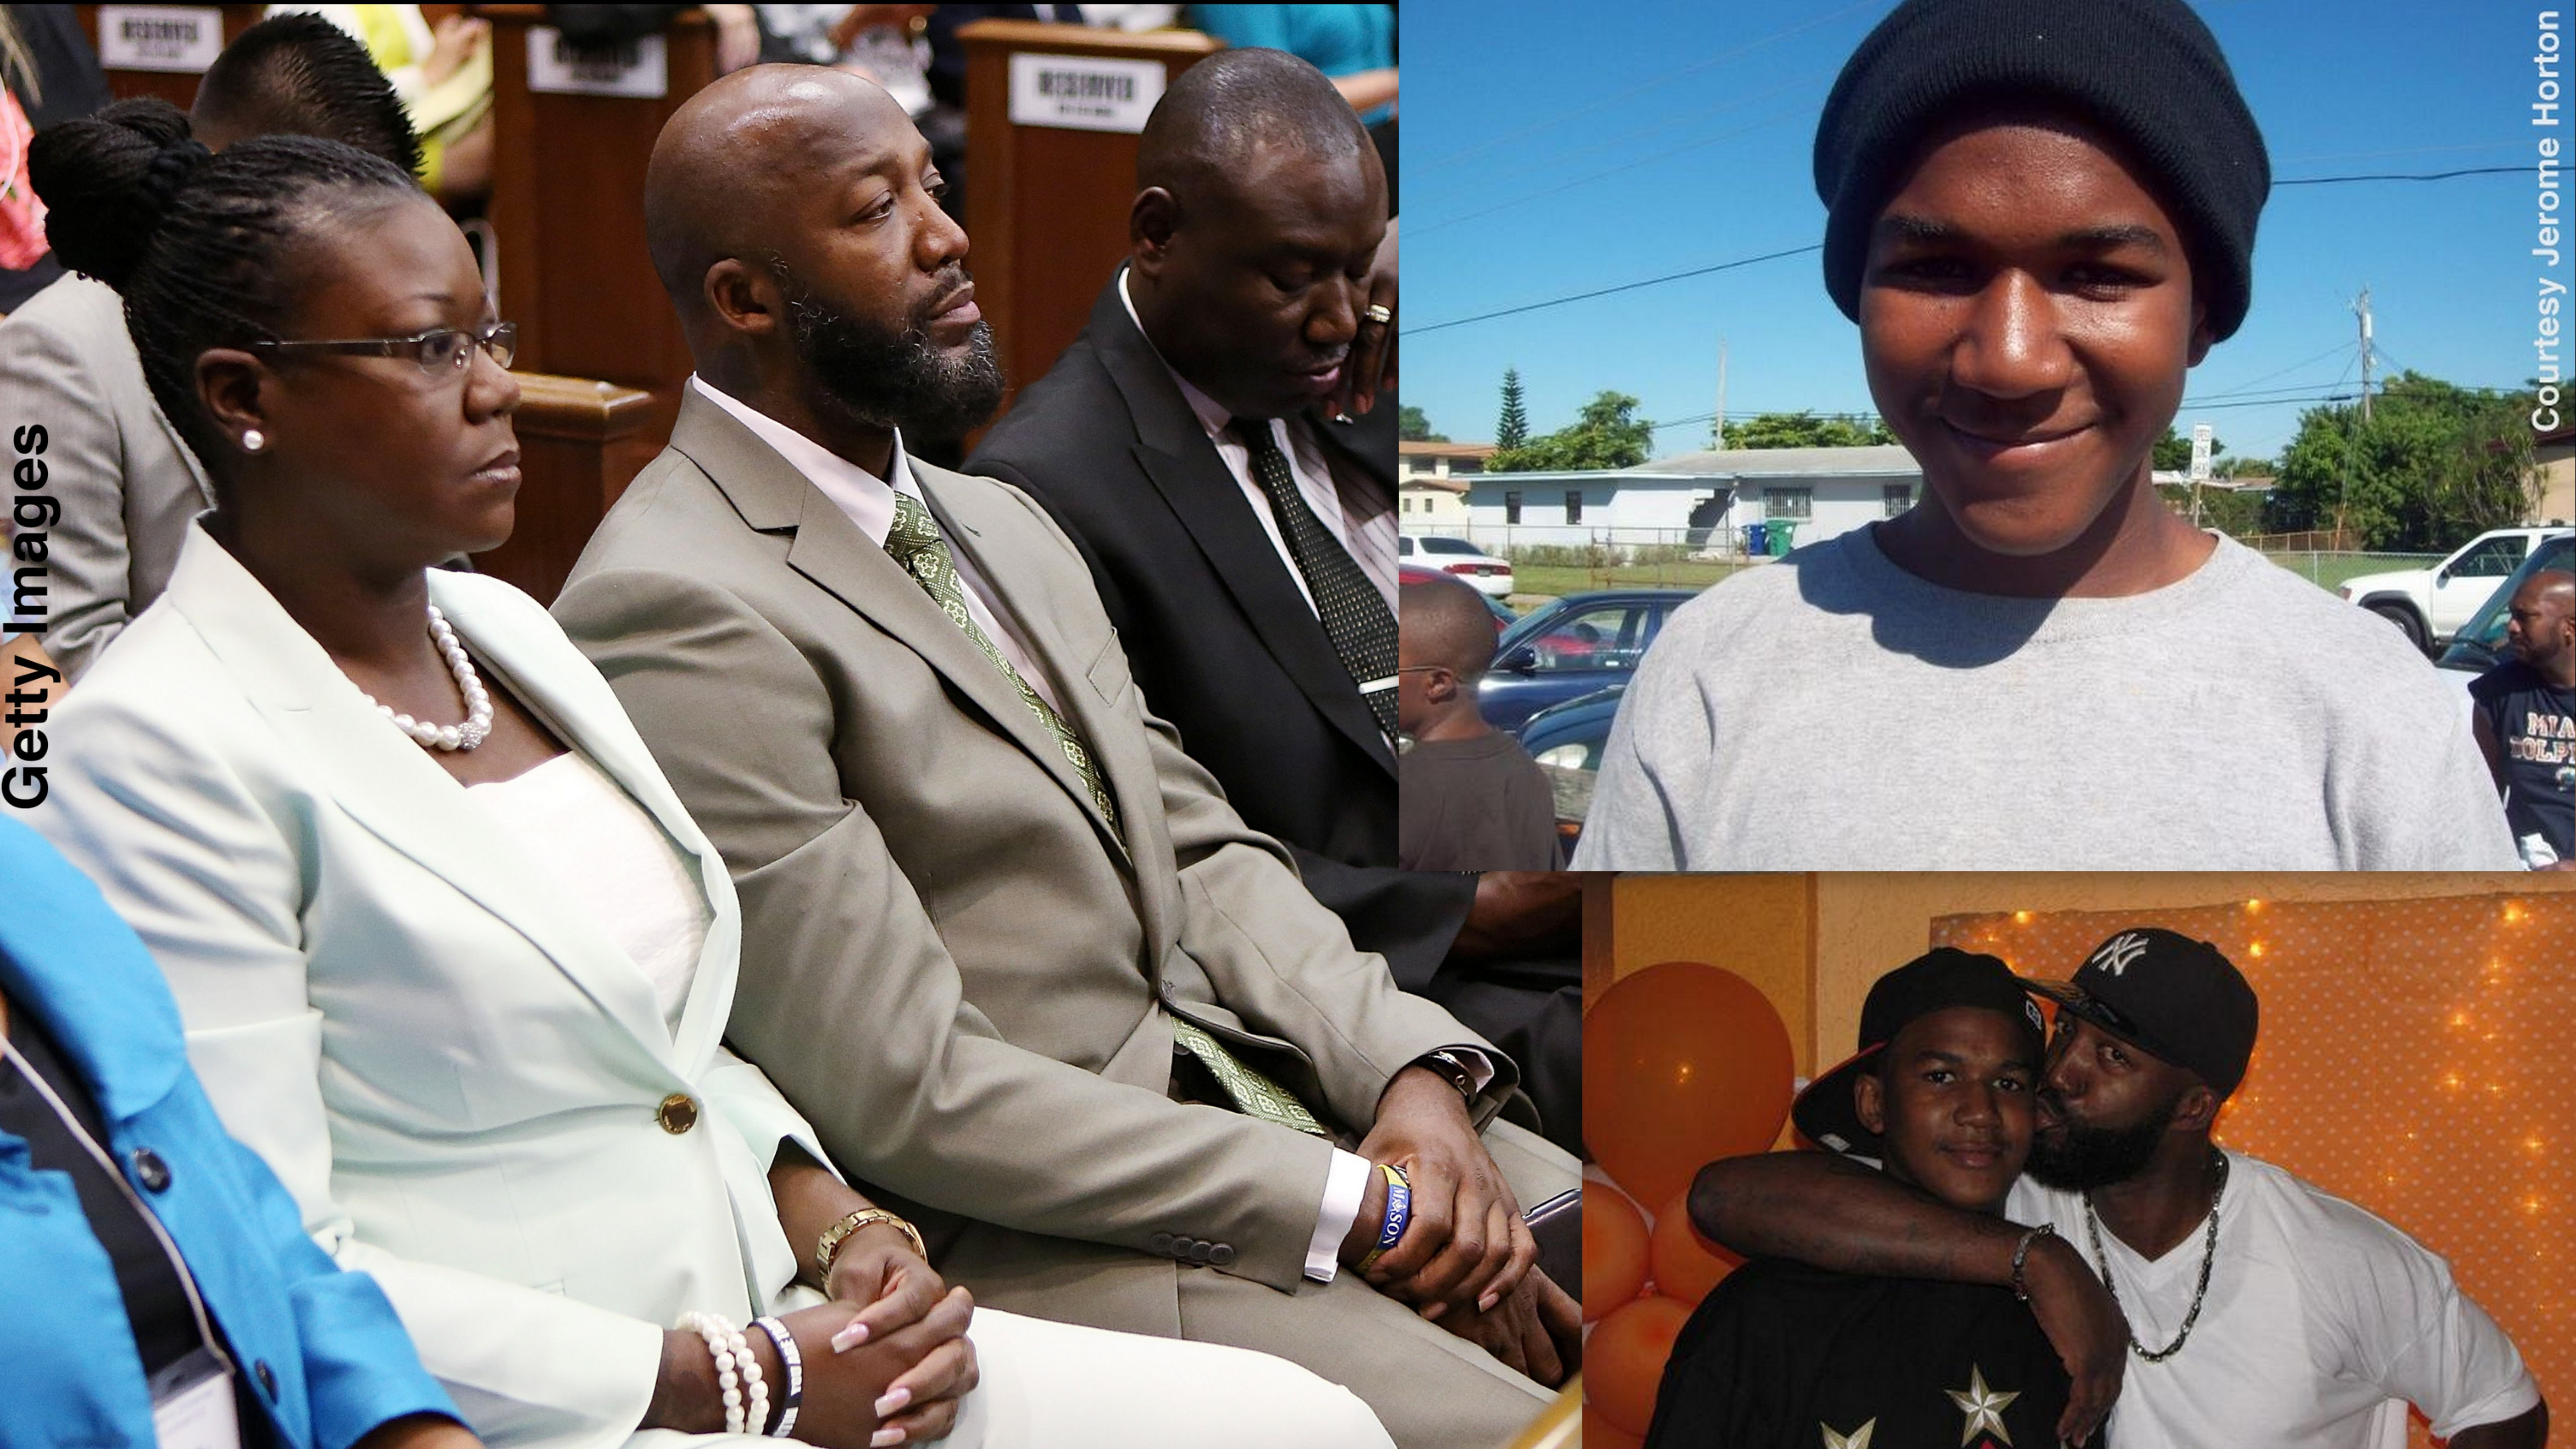 Tonight on AC360: Trayvon Martin's parents speak out